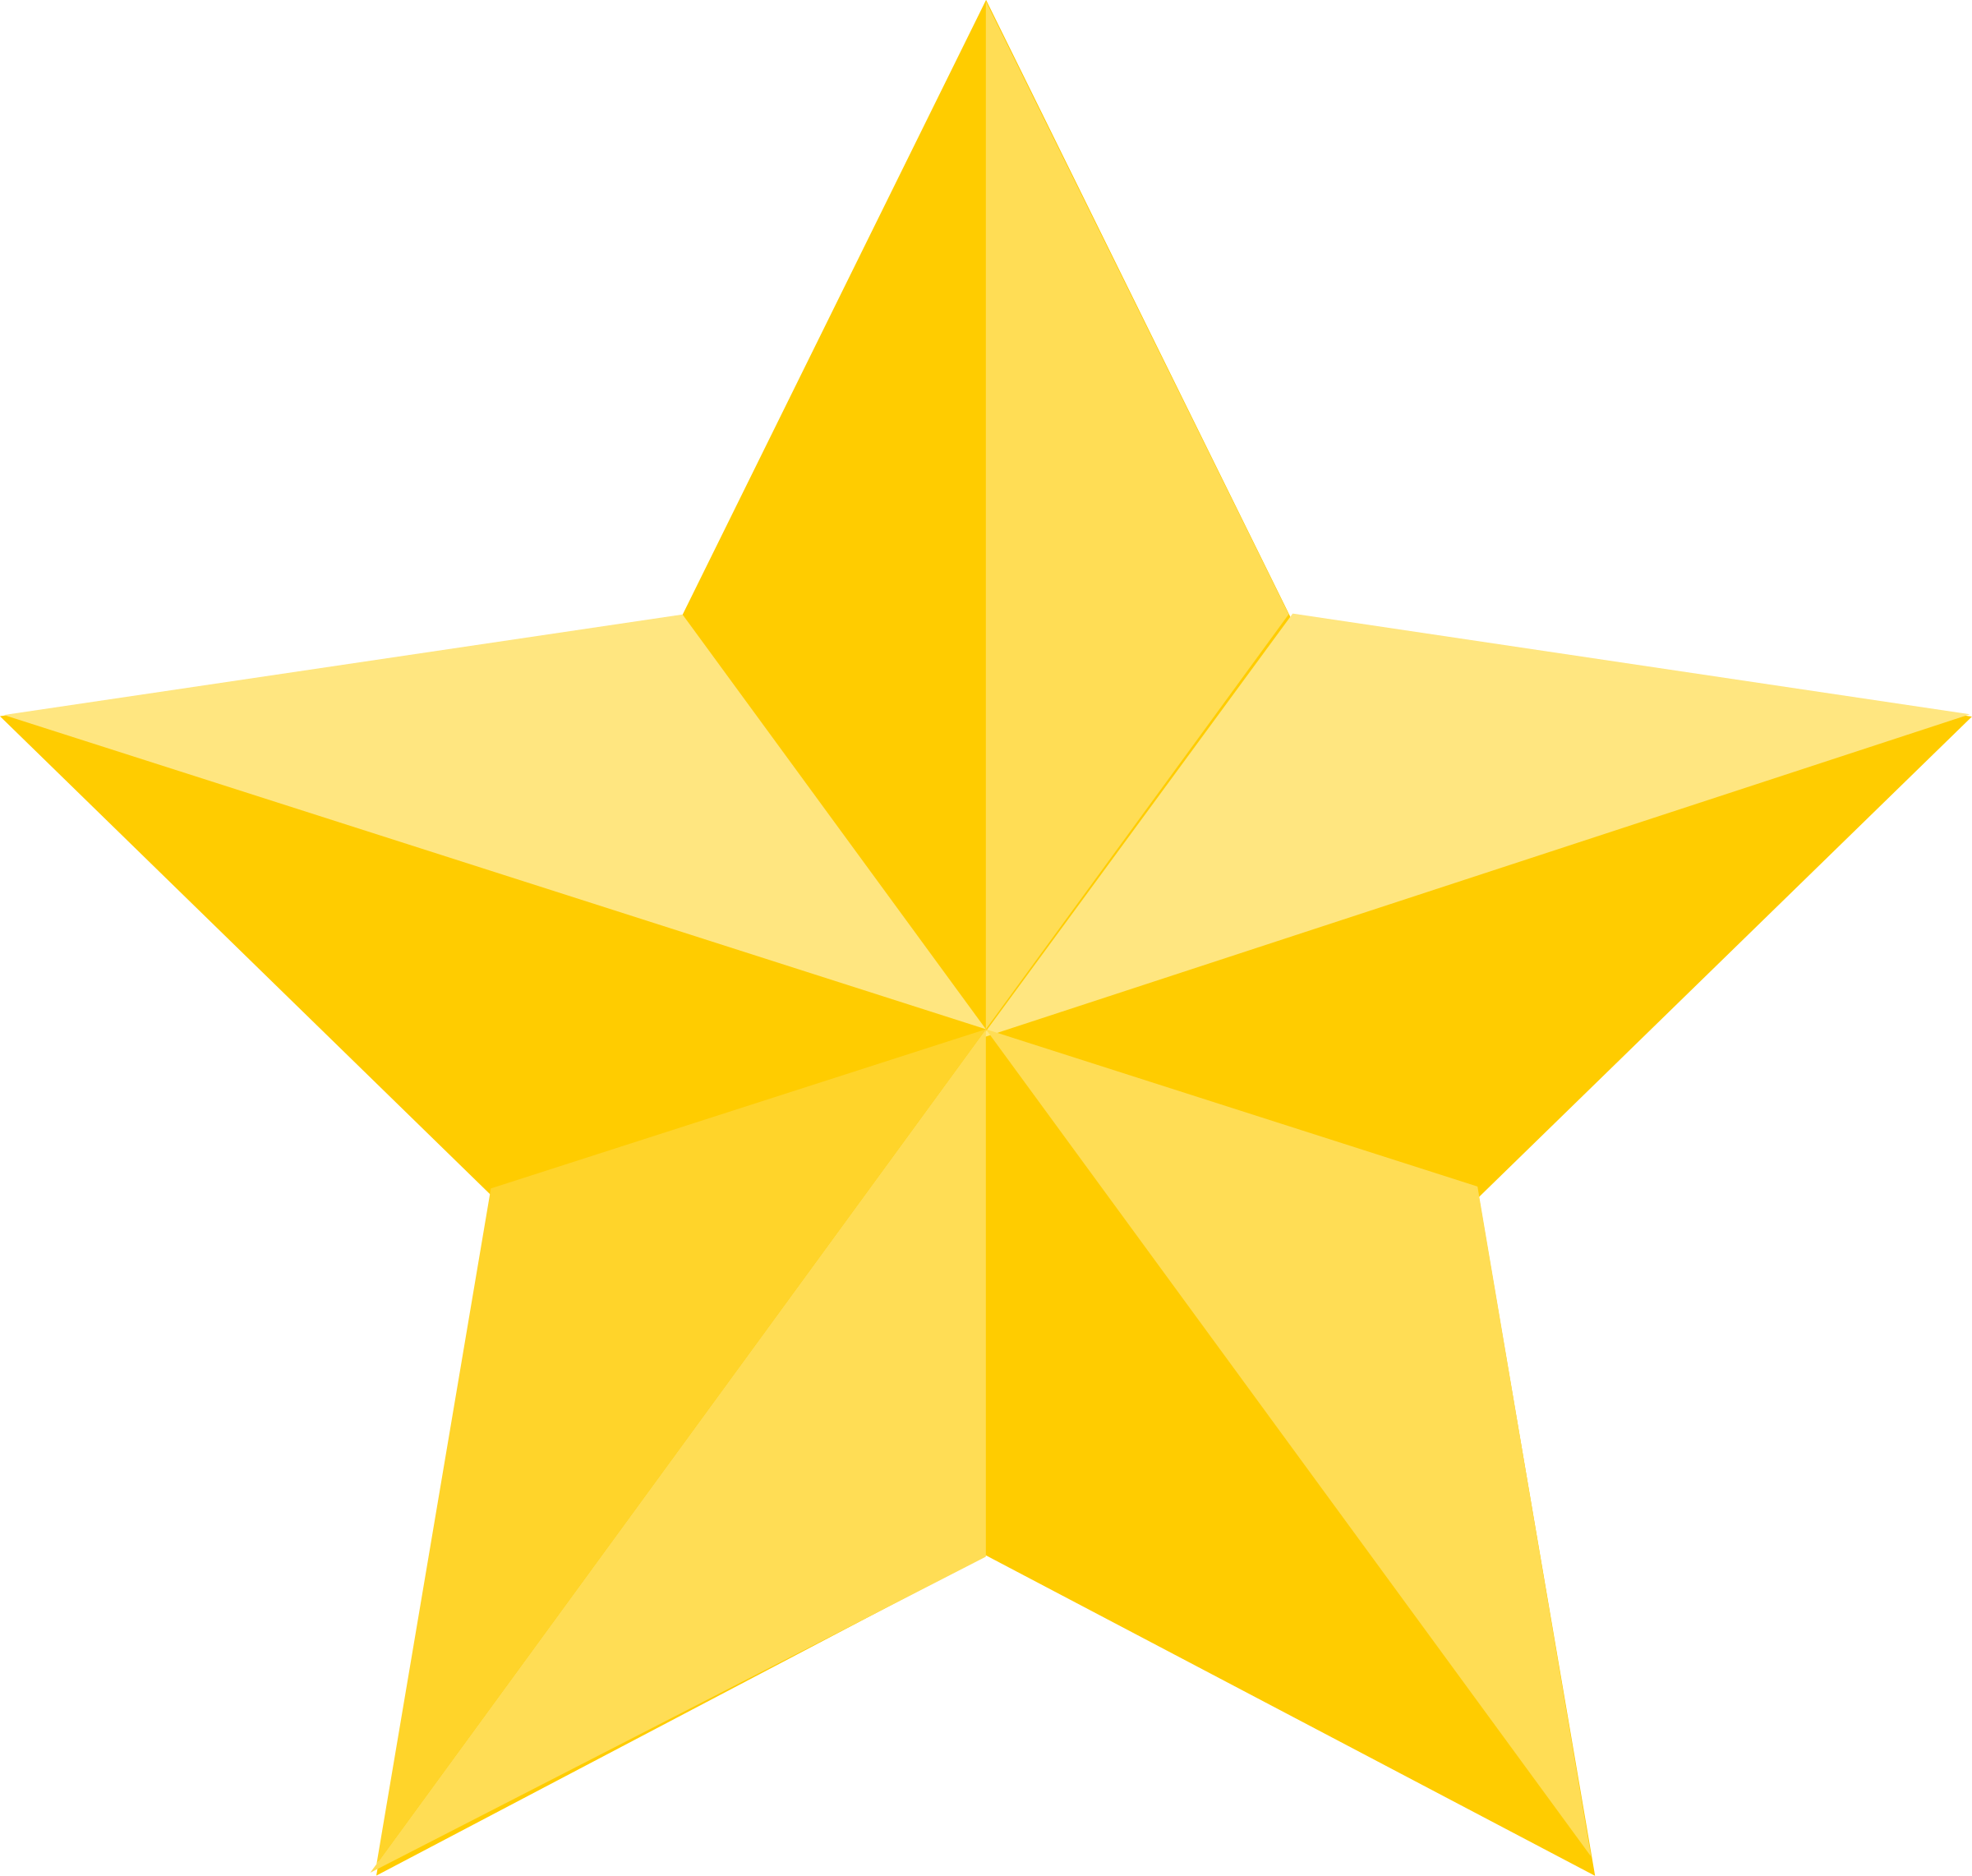 Stellar star clipart image free library Images Of A Star (60+) image free library